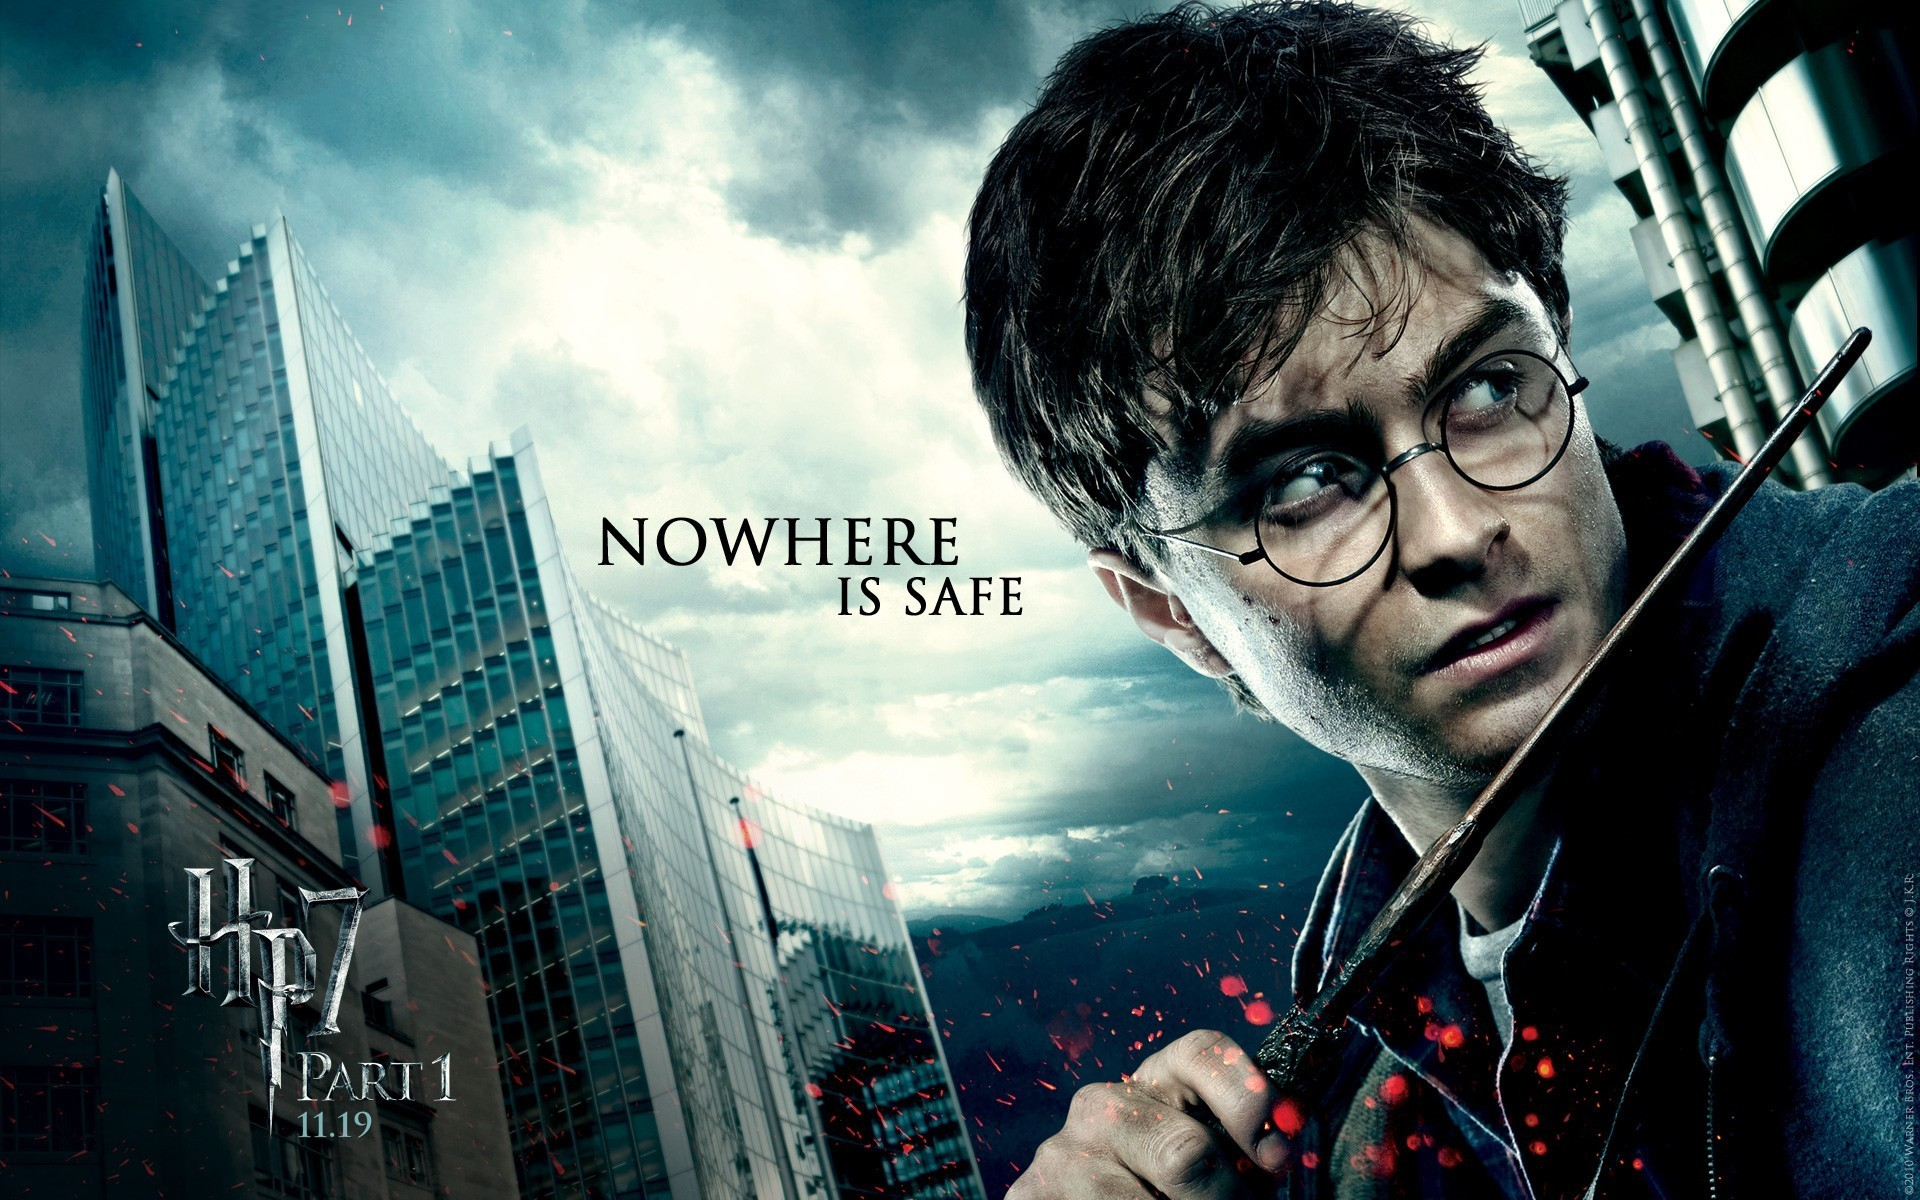 1920x1080 Free Hd Harry Potter Wallpapers Download